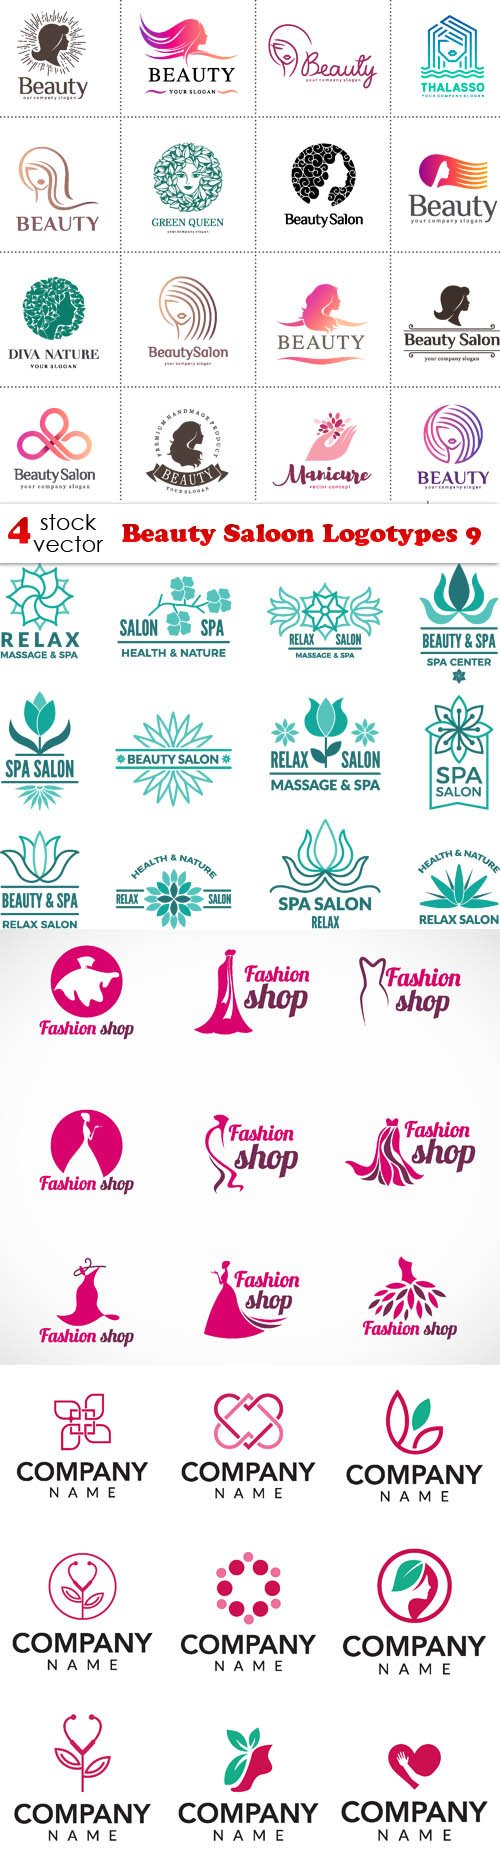 Vectors - Beauty Saloon Logotypes 9